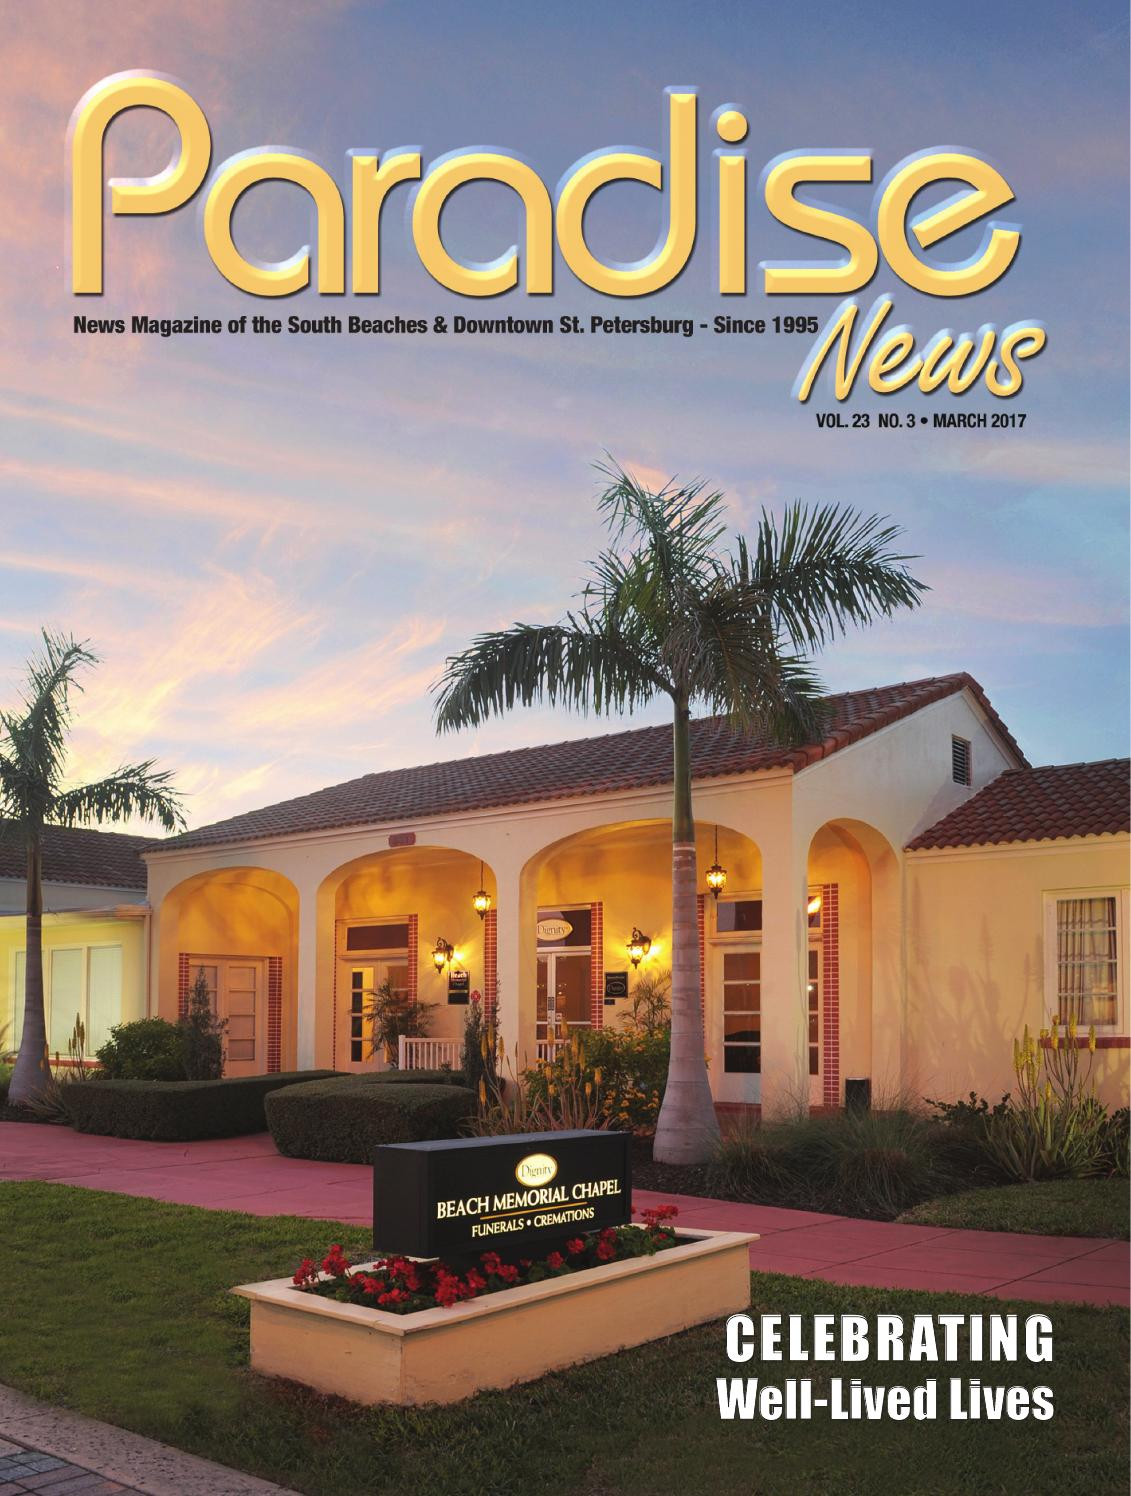 bamboo fence installation team galatea homes decorative.htm paradise news march 2017 issue by paradisenewsfl issuu  march 2017 issue by paradisenewsfl